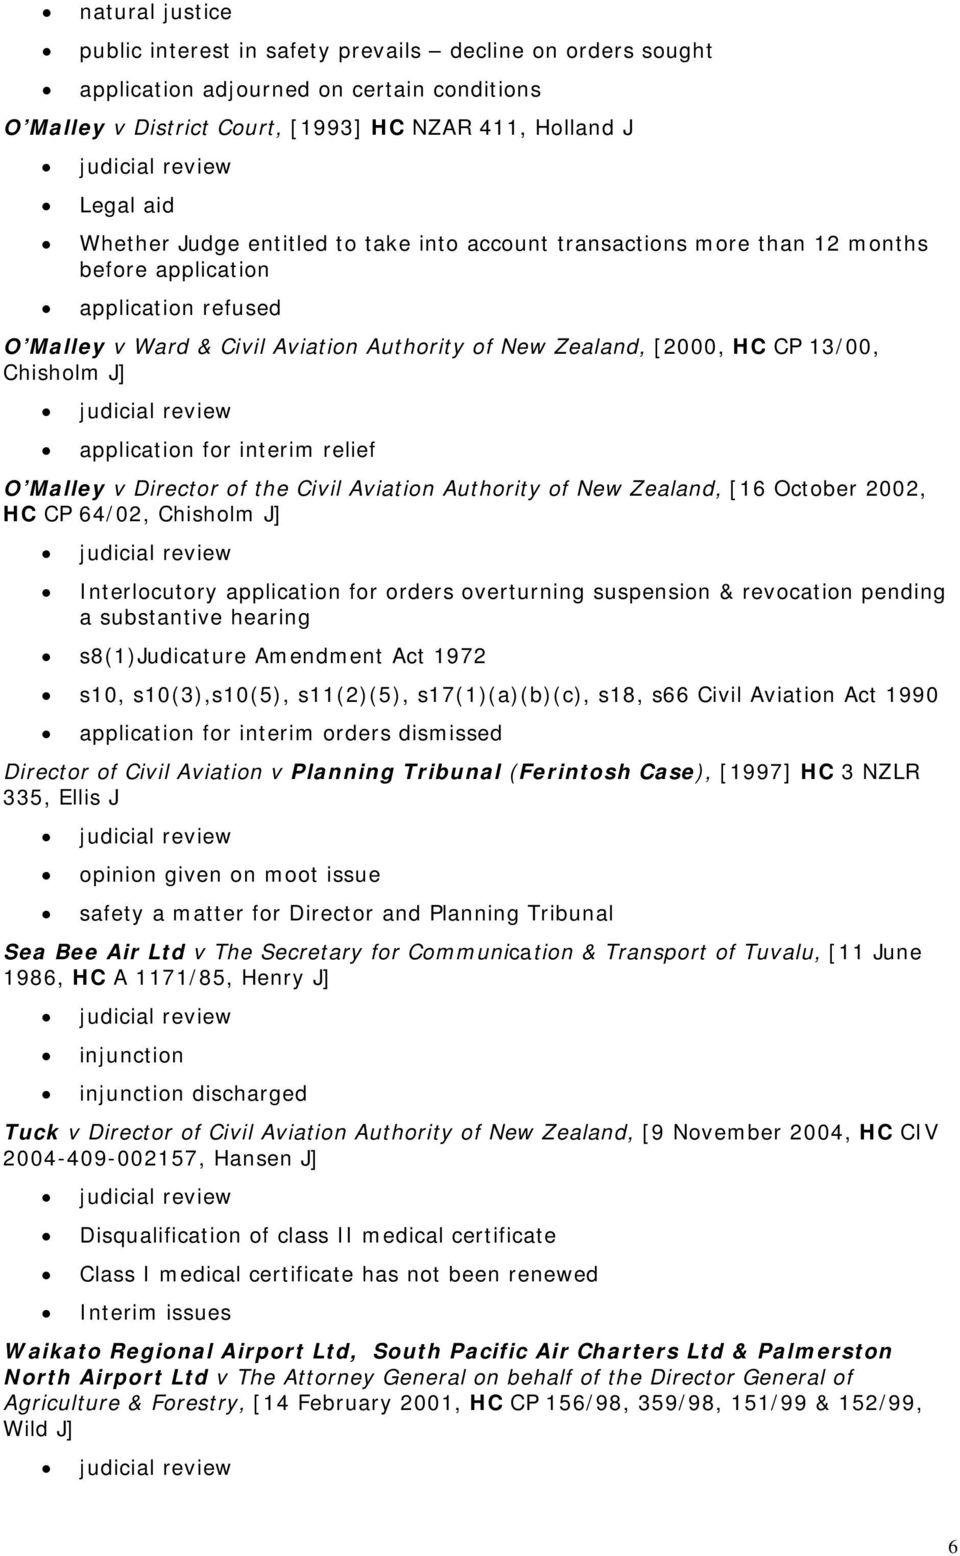 application for interim relief O Malley v Director of the Civil Aviation Authority of New Zealand, [16 October 2002, HC CP 64/02, Chisholm J] Interlocutory application for orders overturning